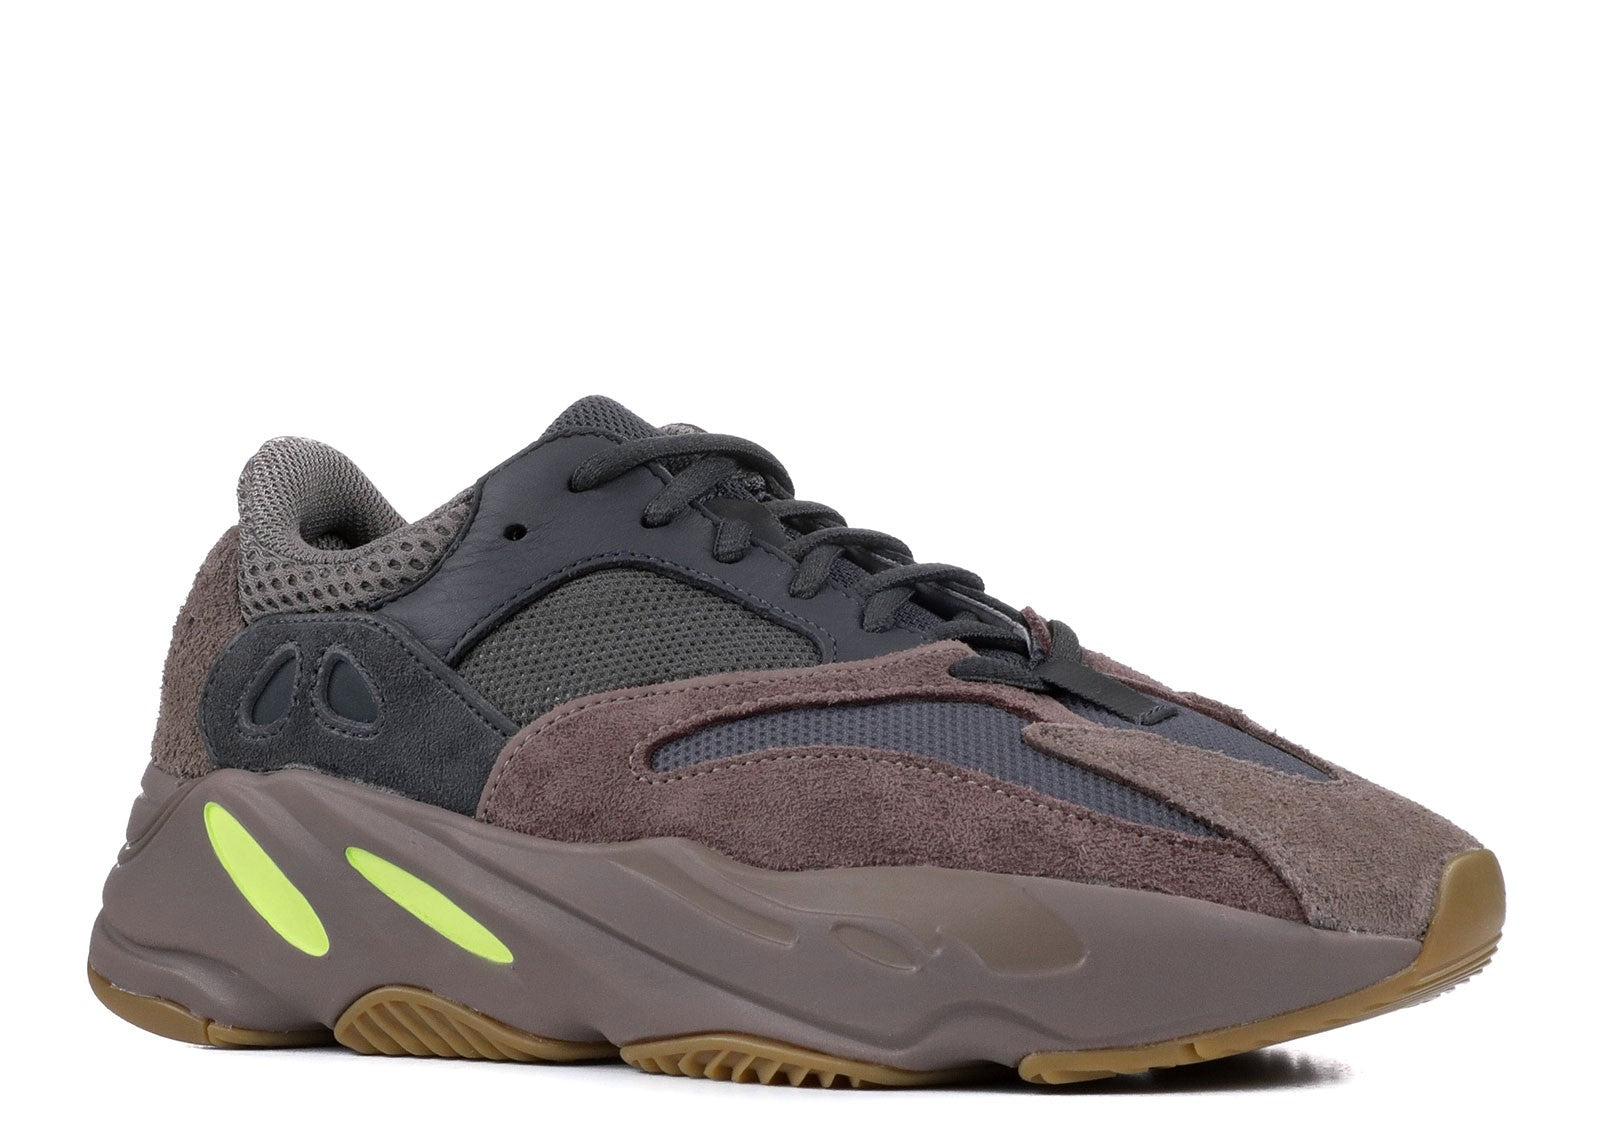 Adidas Yeezy Boost 700 'Mauve'